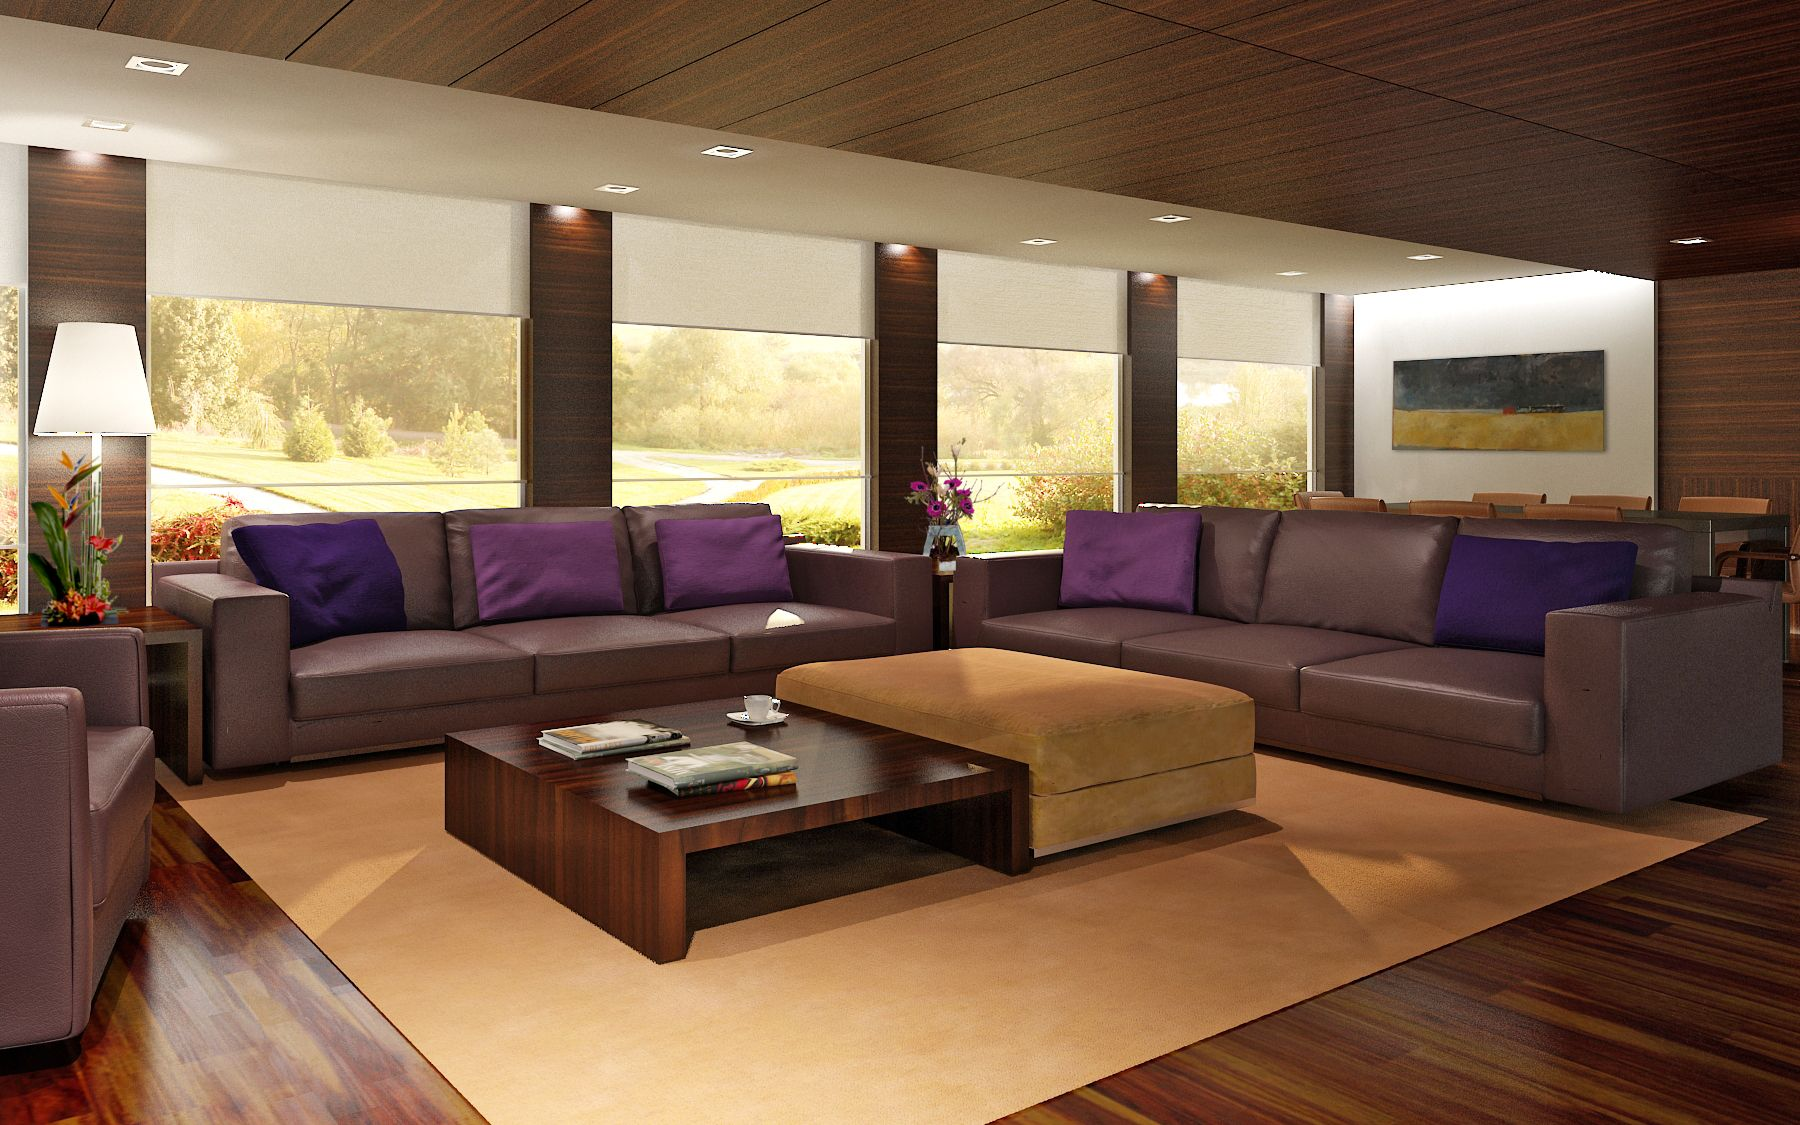 Decoration Curtain Wall In Modern Formal Living Room Design Ideas With Purple Pillo Elegant Living Room Design Purple Living Room Modern Furniture Living Room